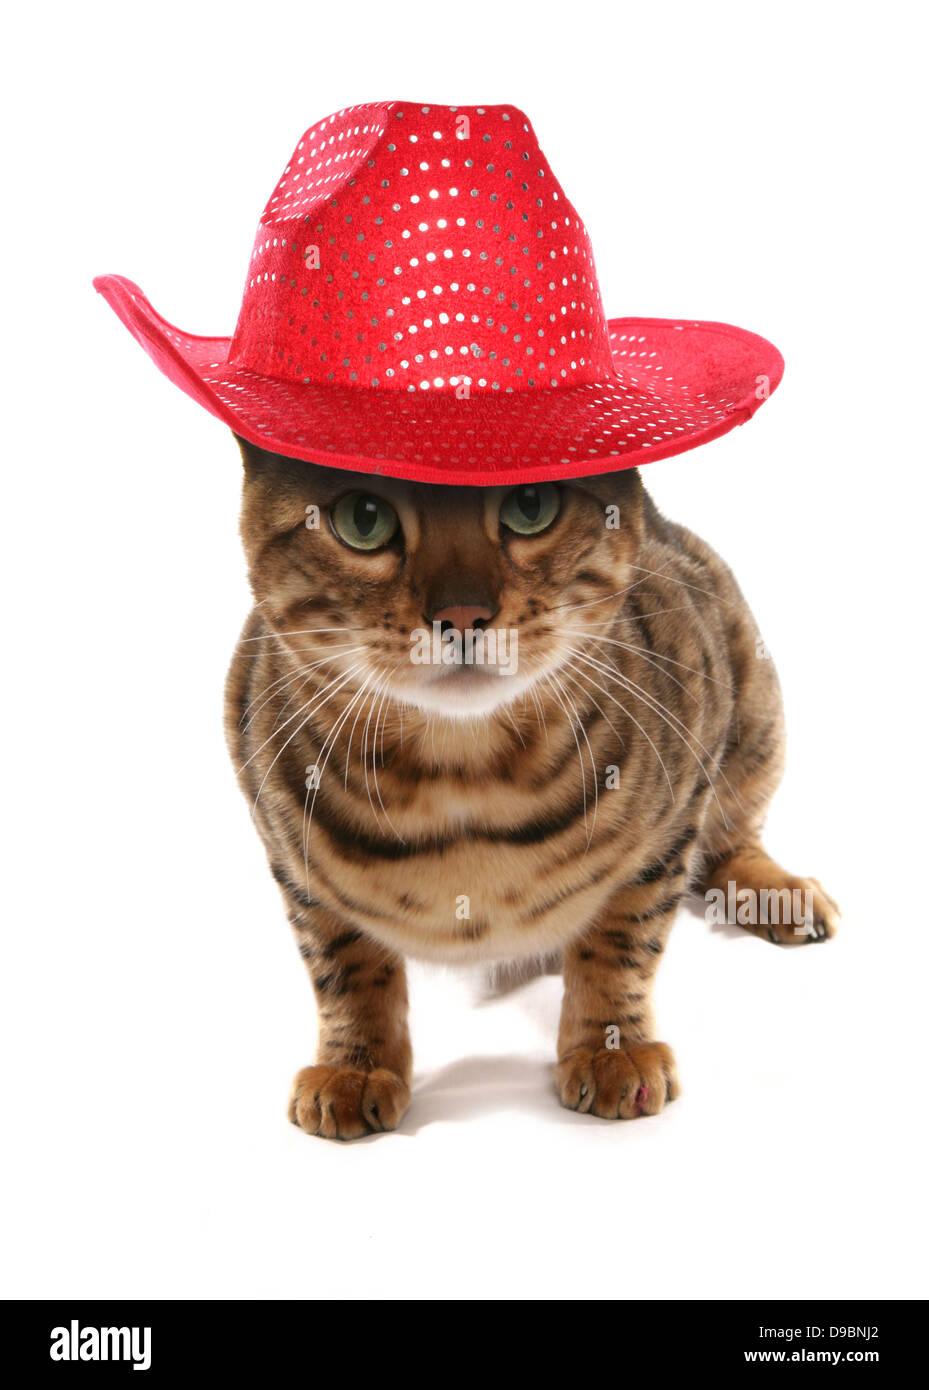 Kittens Cowboy Hat Stock Photos & Kittens Cowboy Hat Stock Images